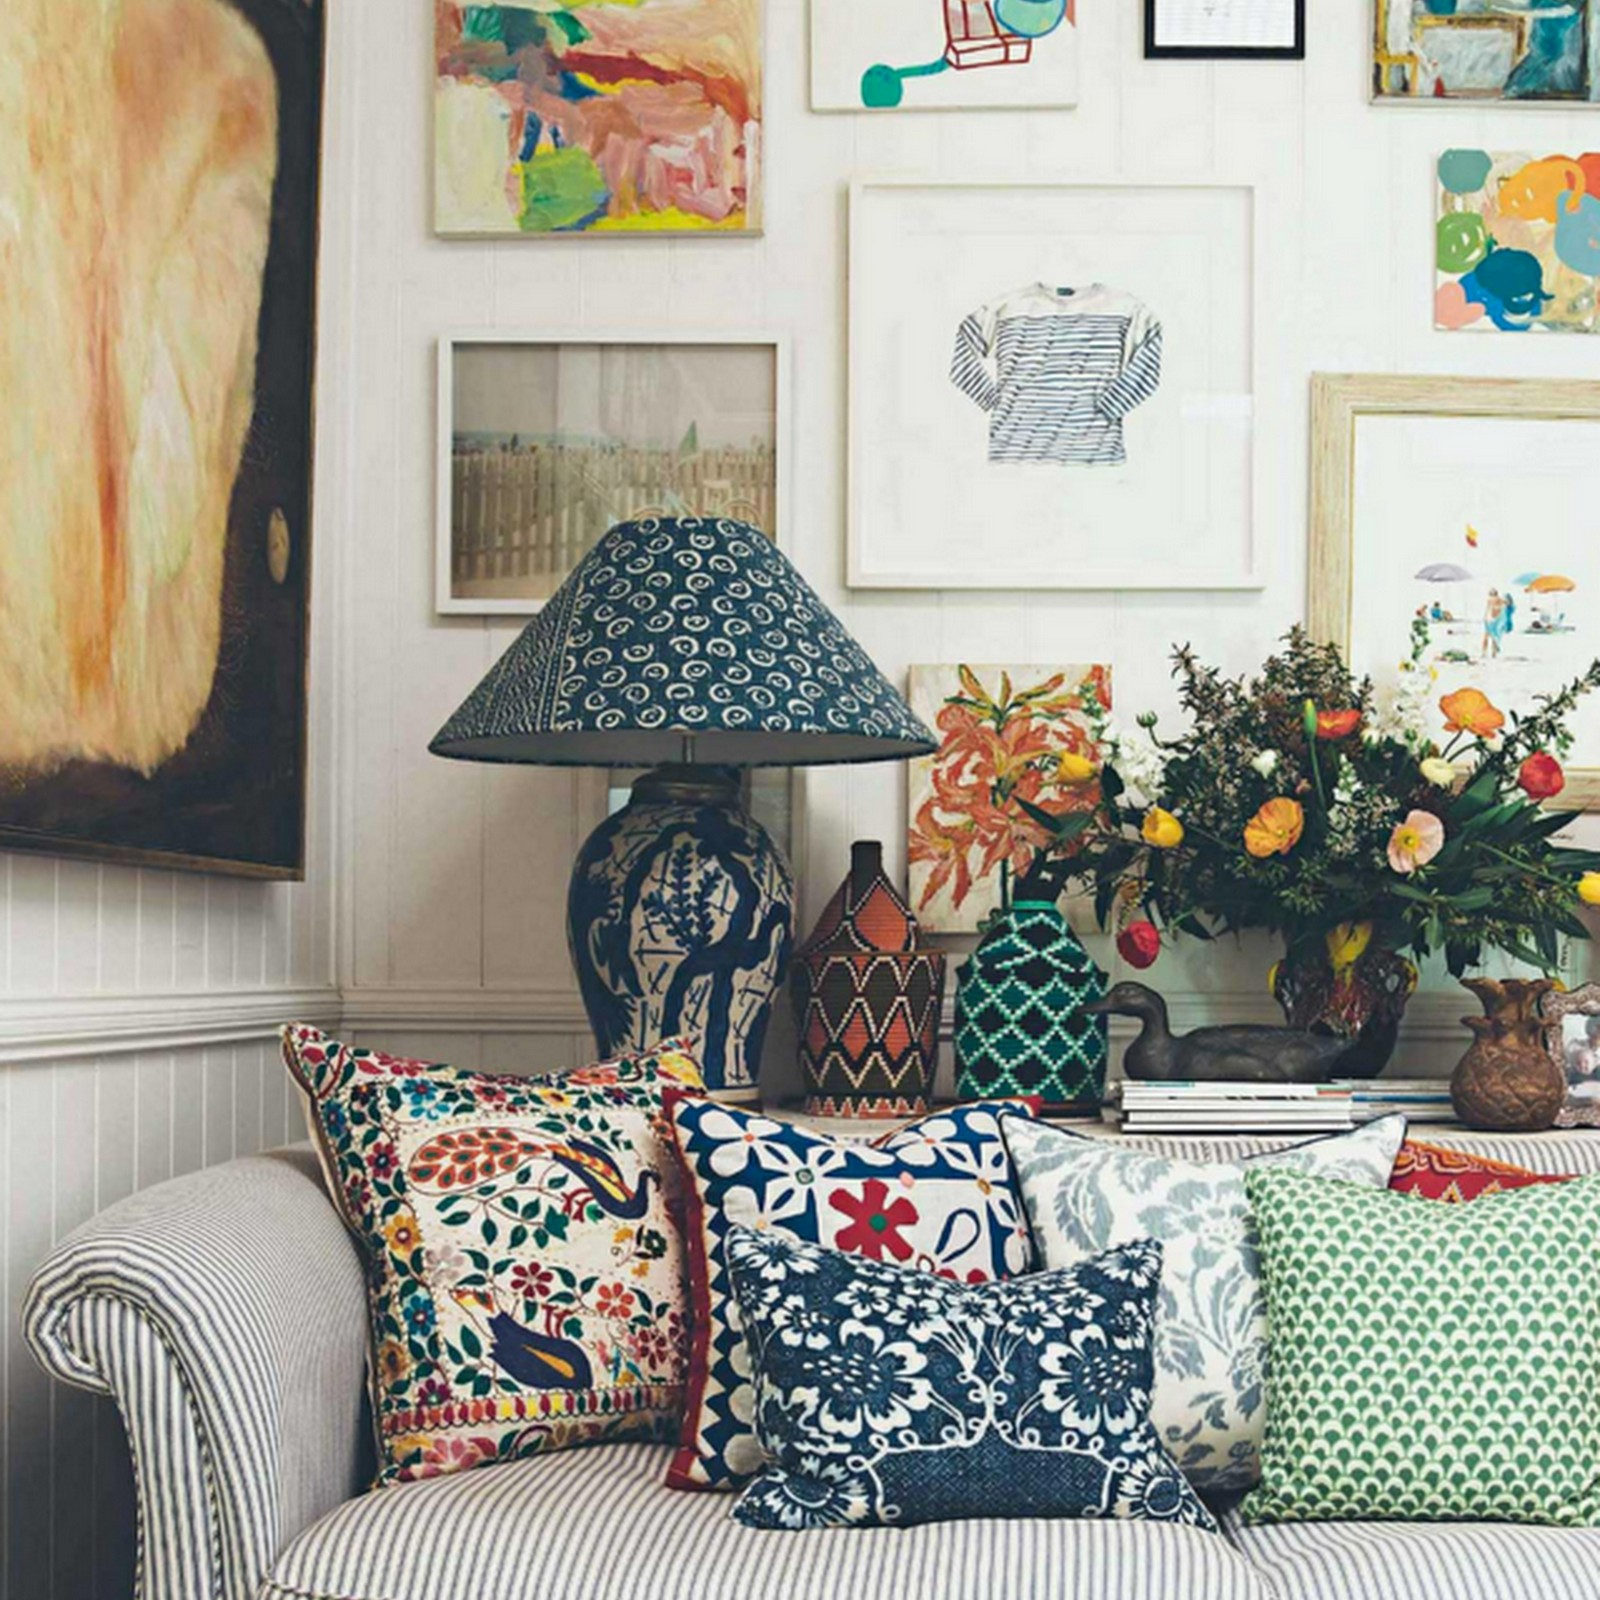 At Home With : Anna Spiro's Colourful